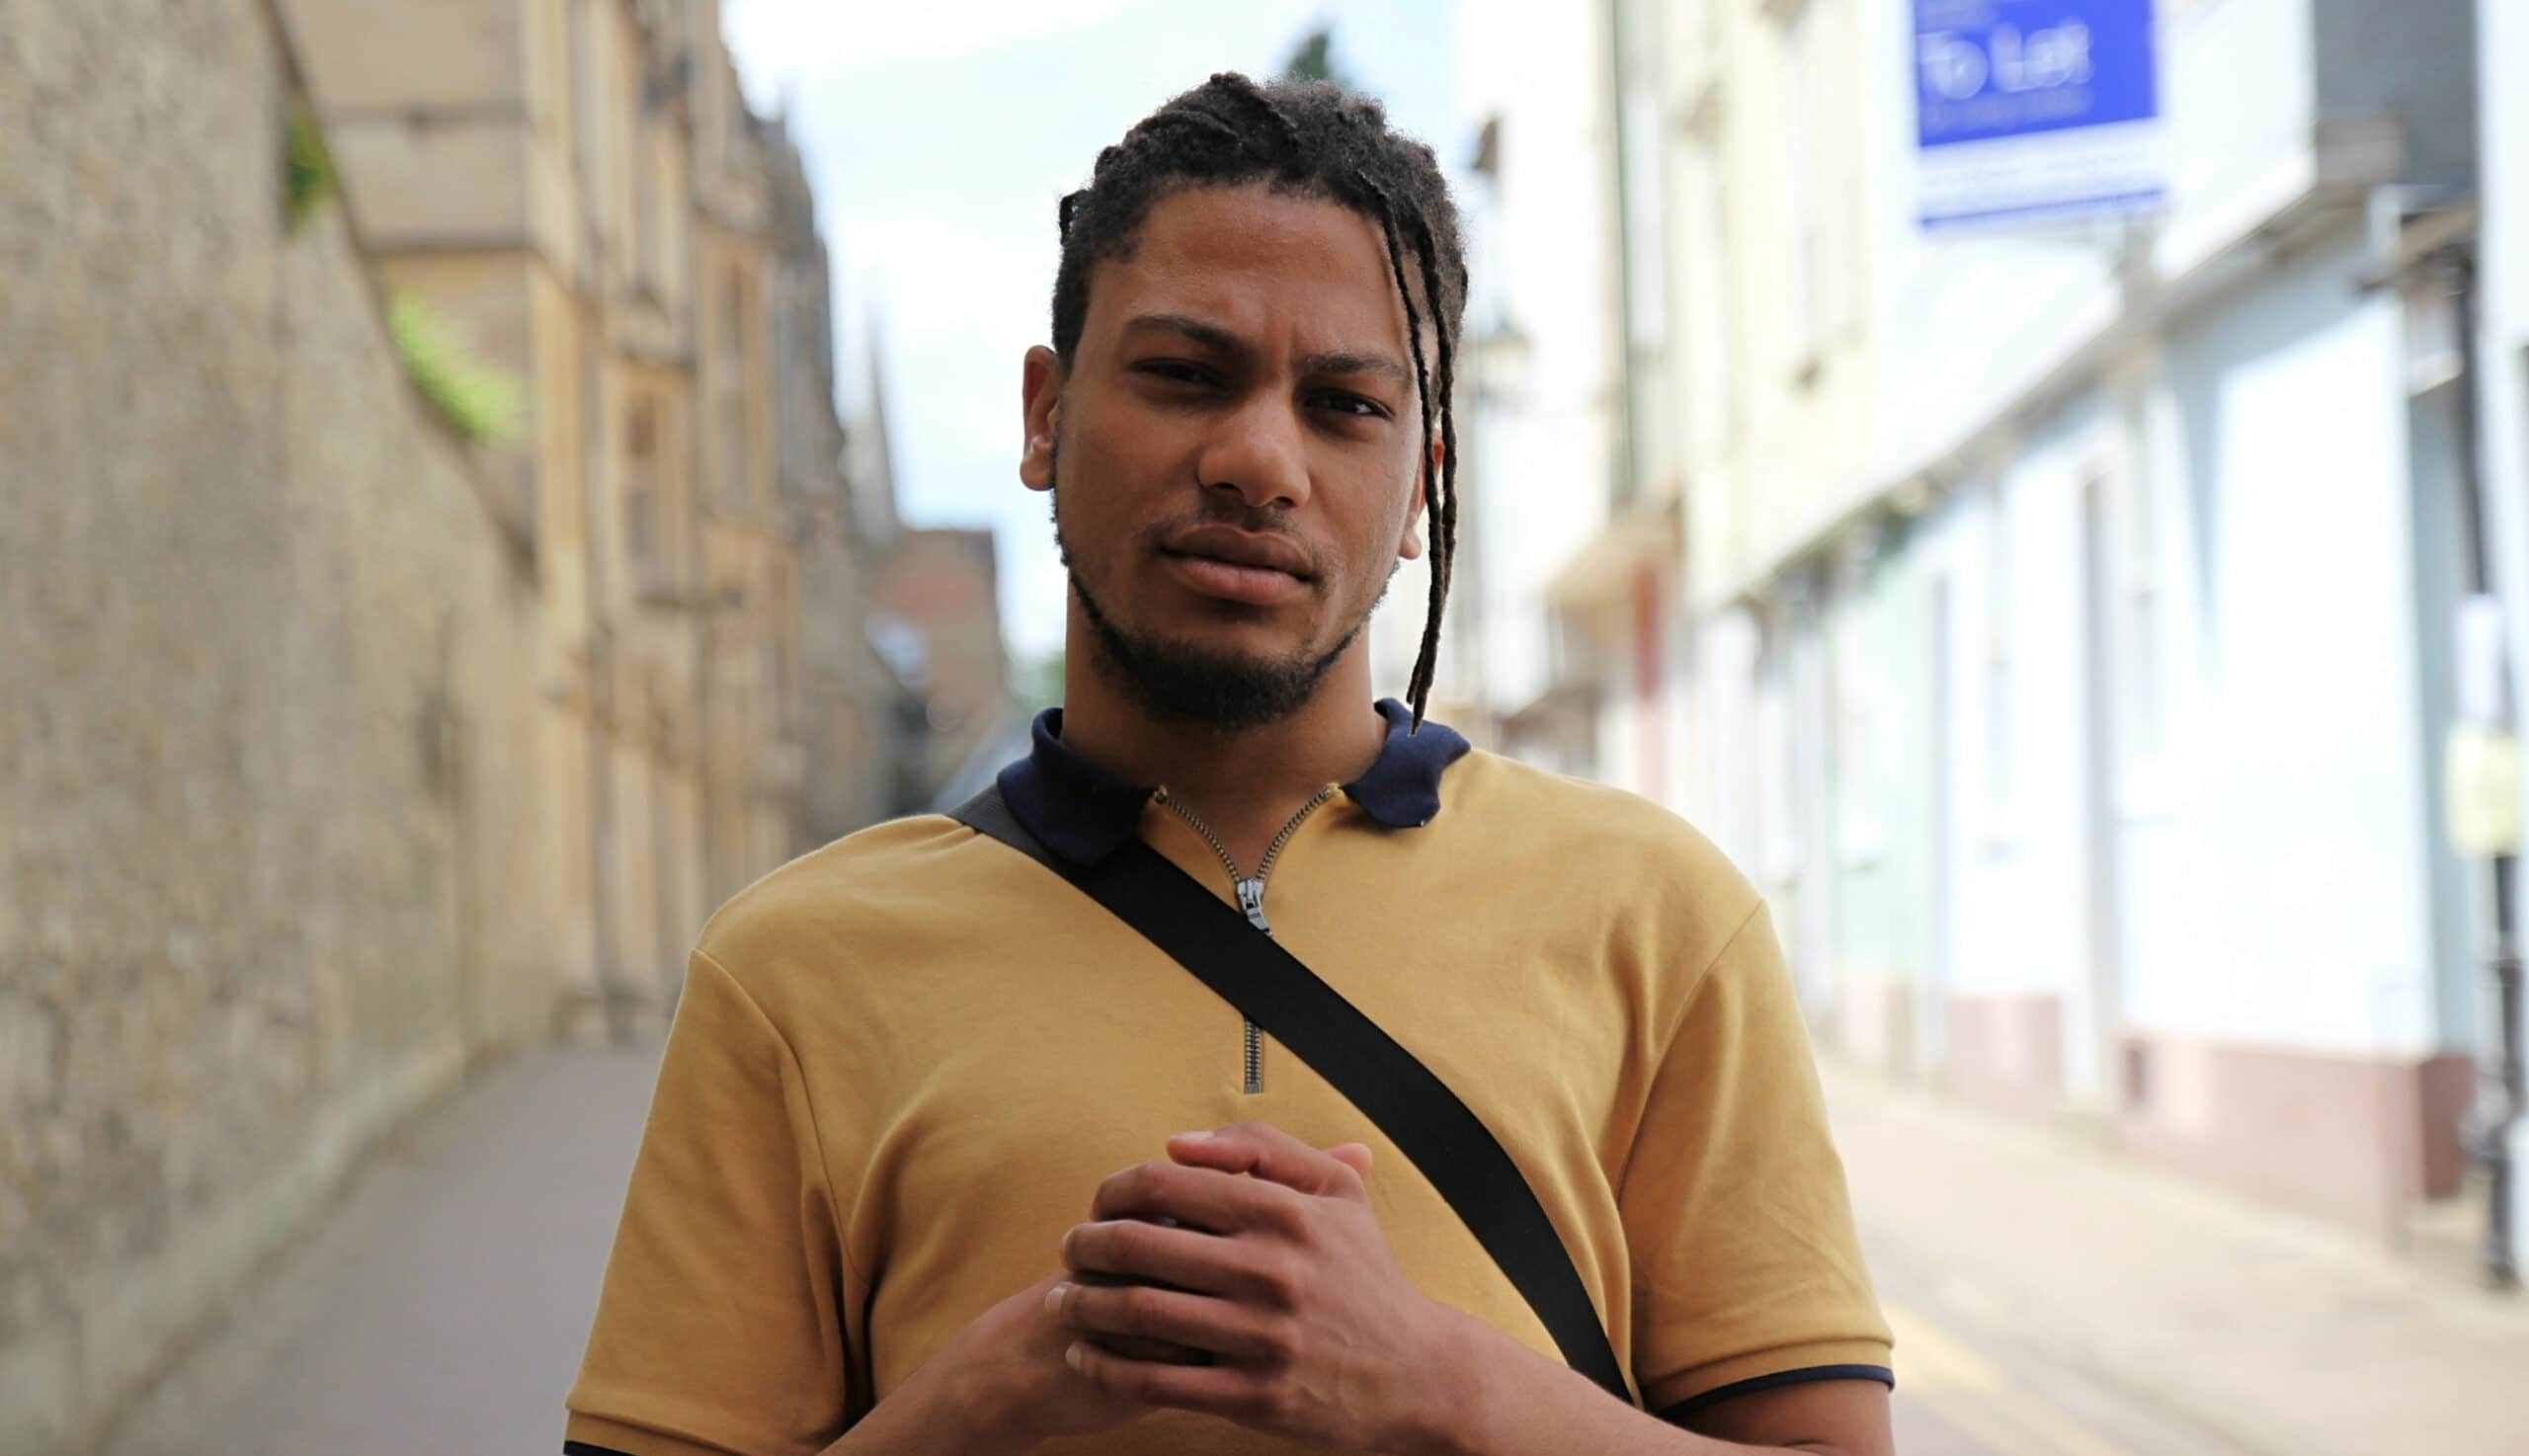 Mamoun Elagab - MANDEM interview